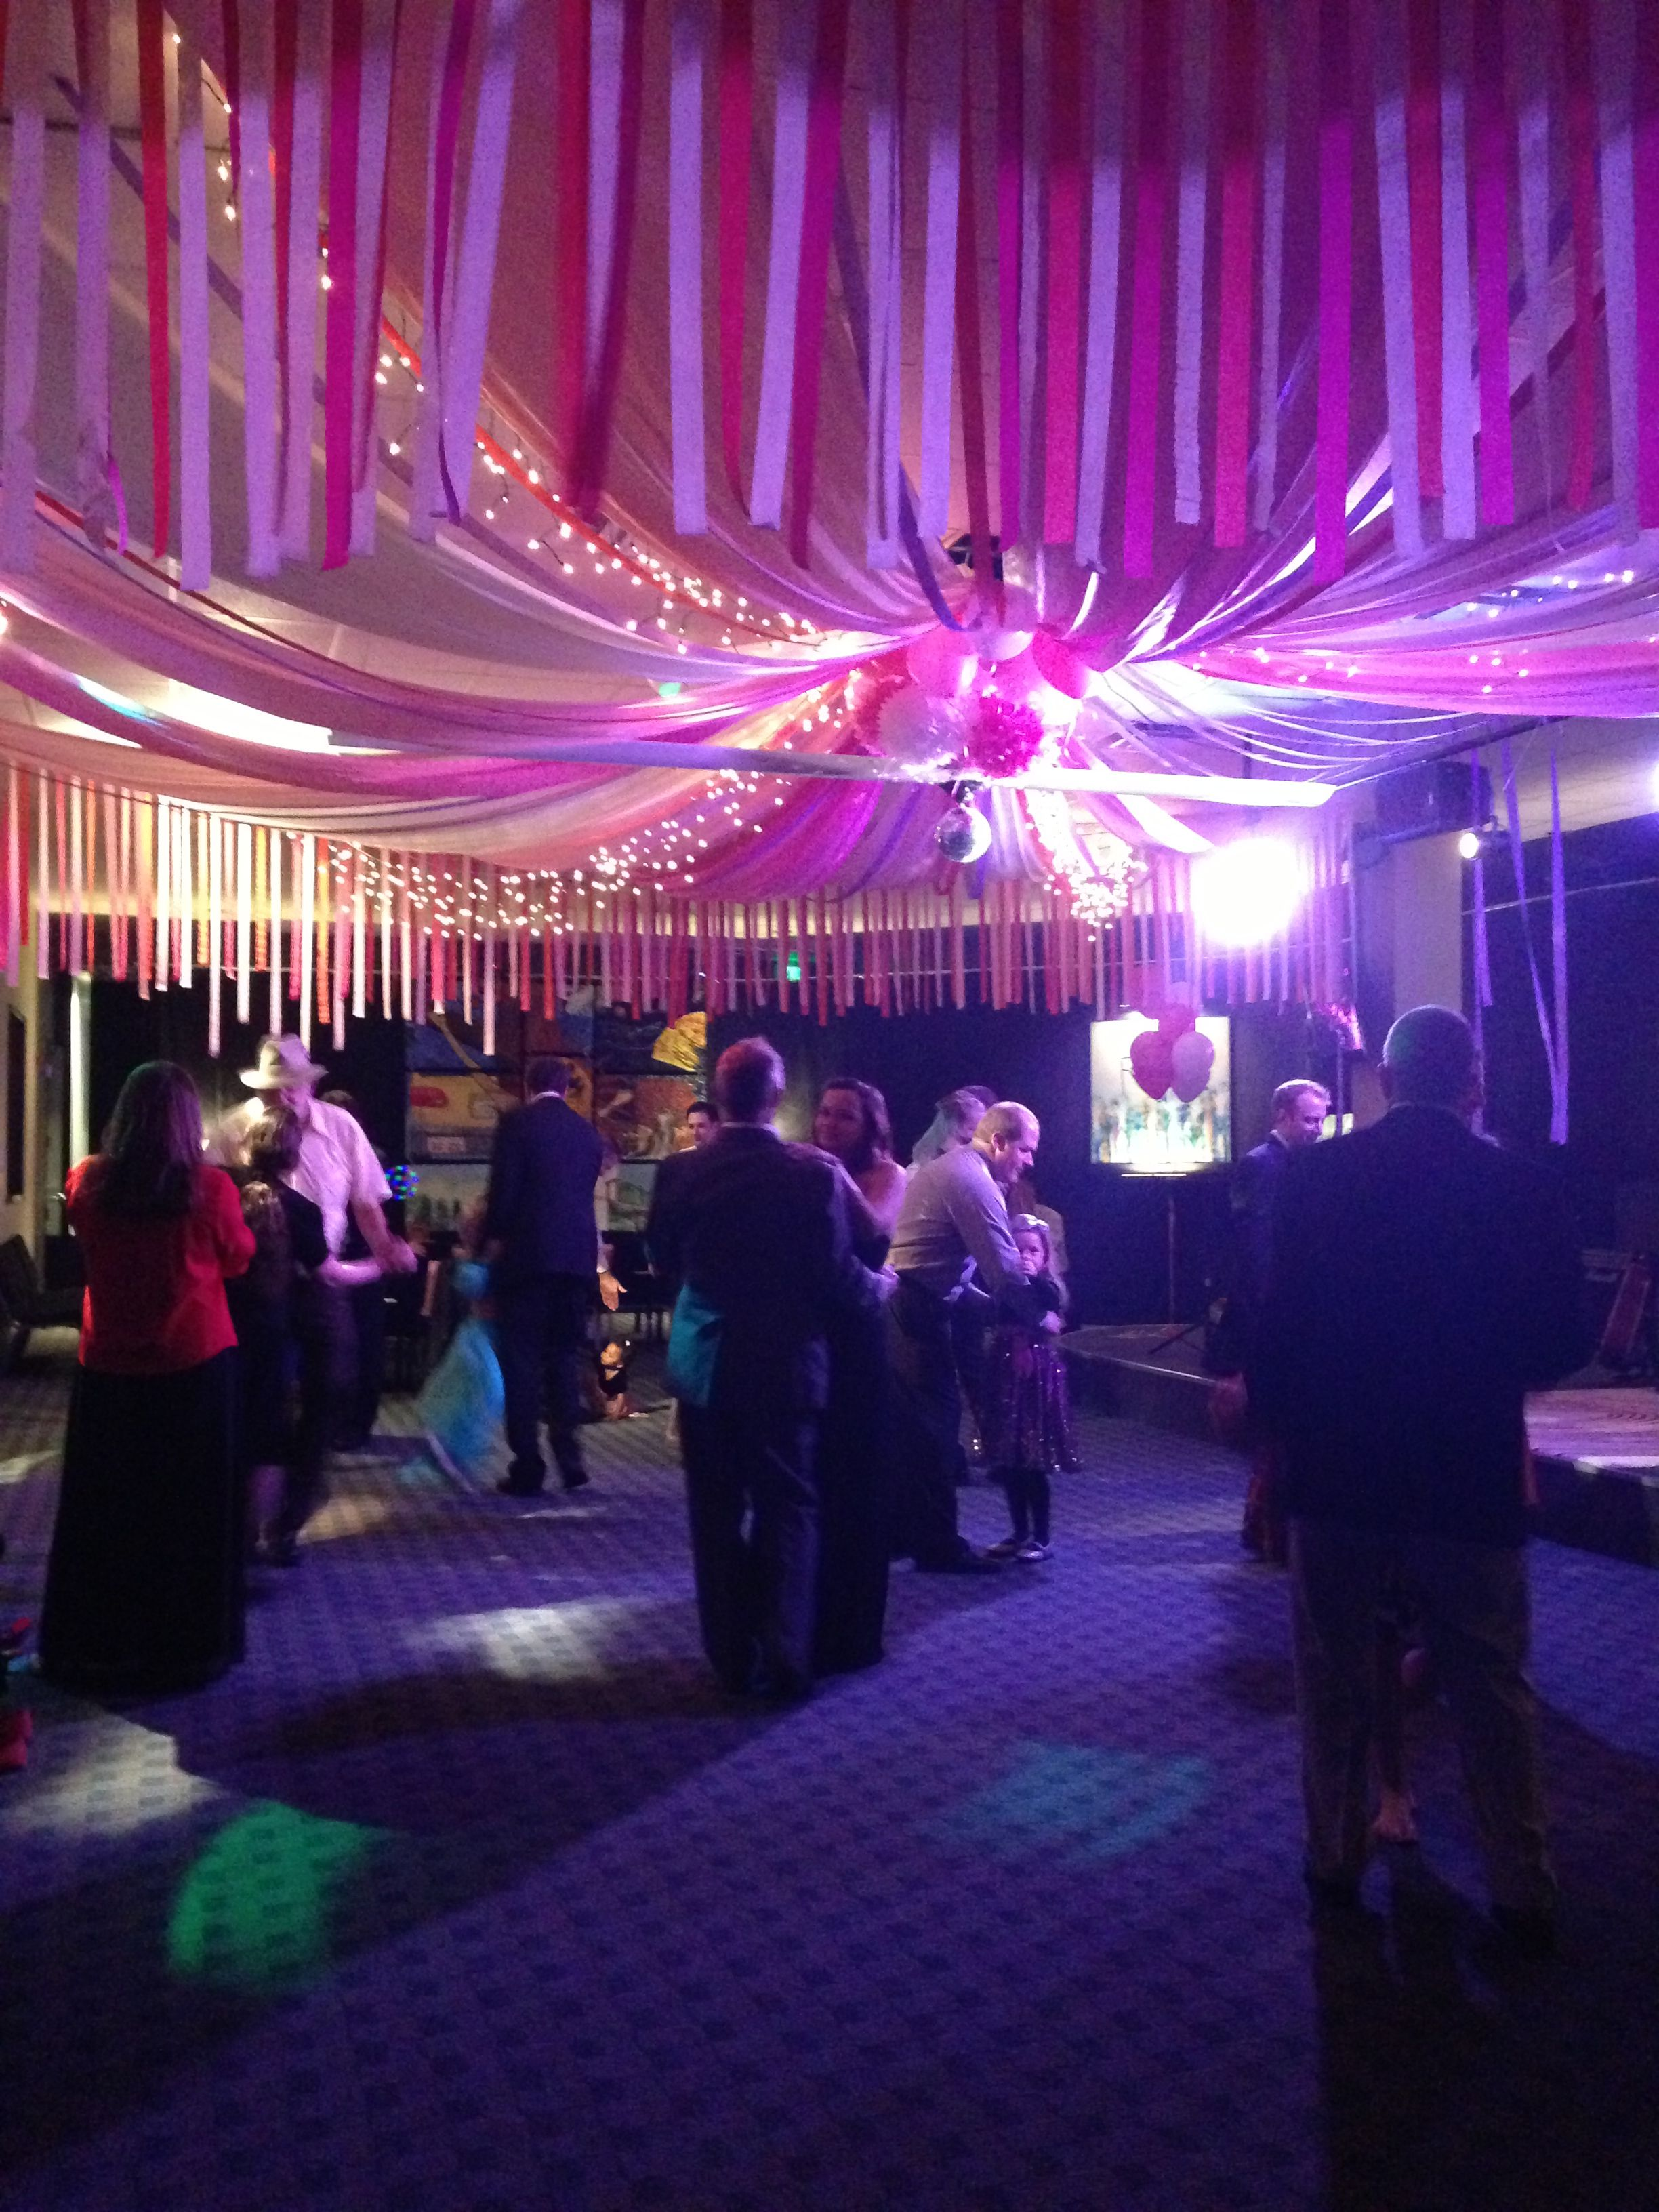 Décoration Bal De Promo Circus Tent Style Prom Decorations Minus The Streamers On